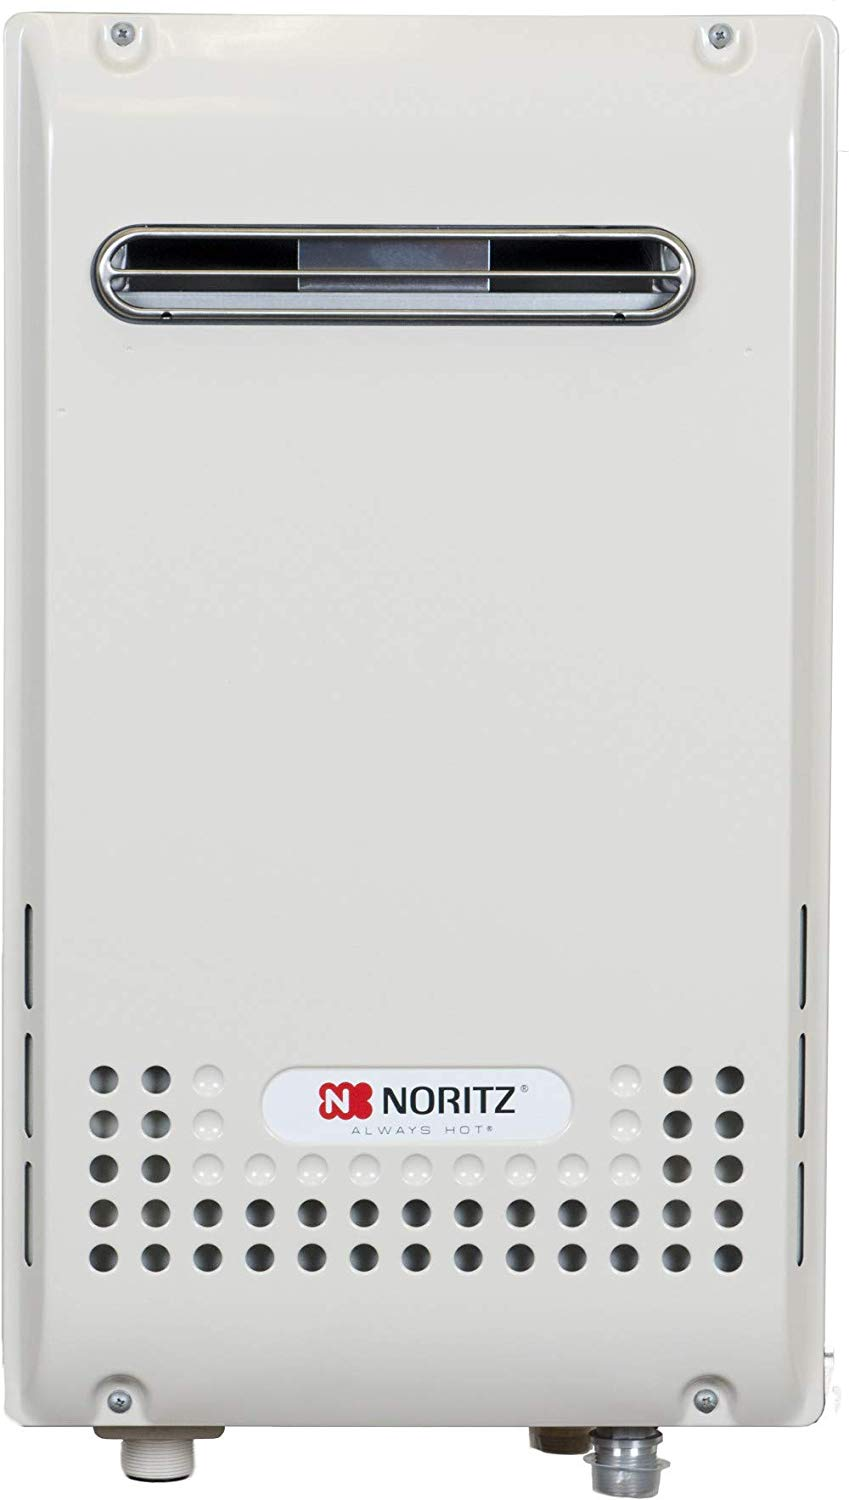 Noritz NR83ODLP Tankless Hot Water Heater